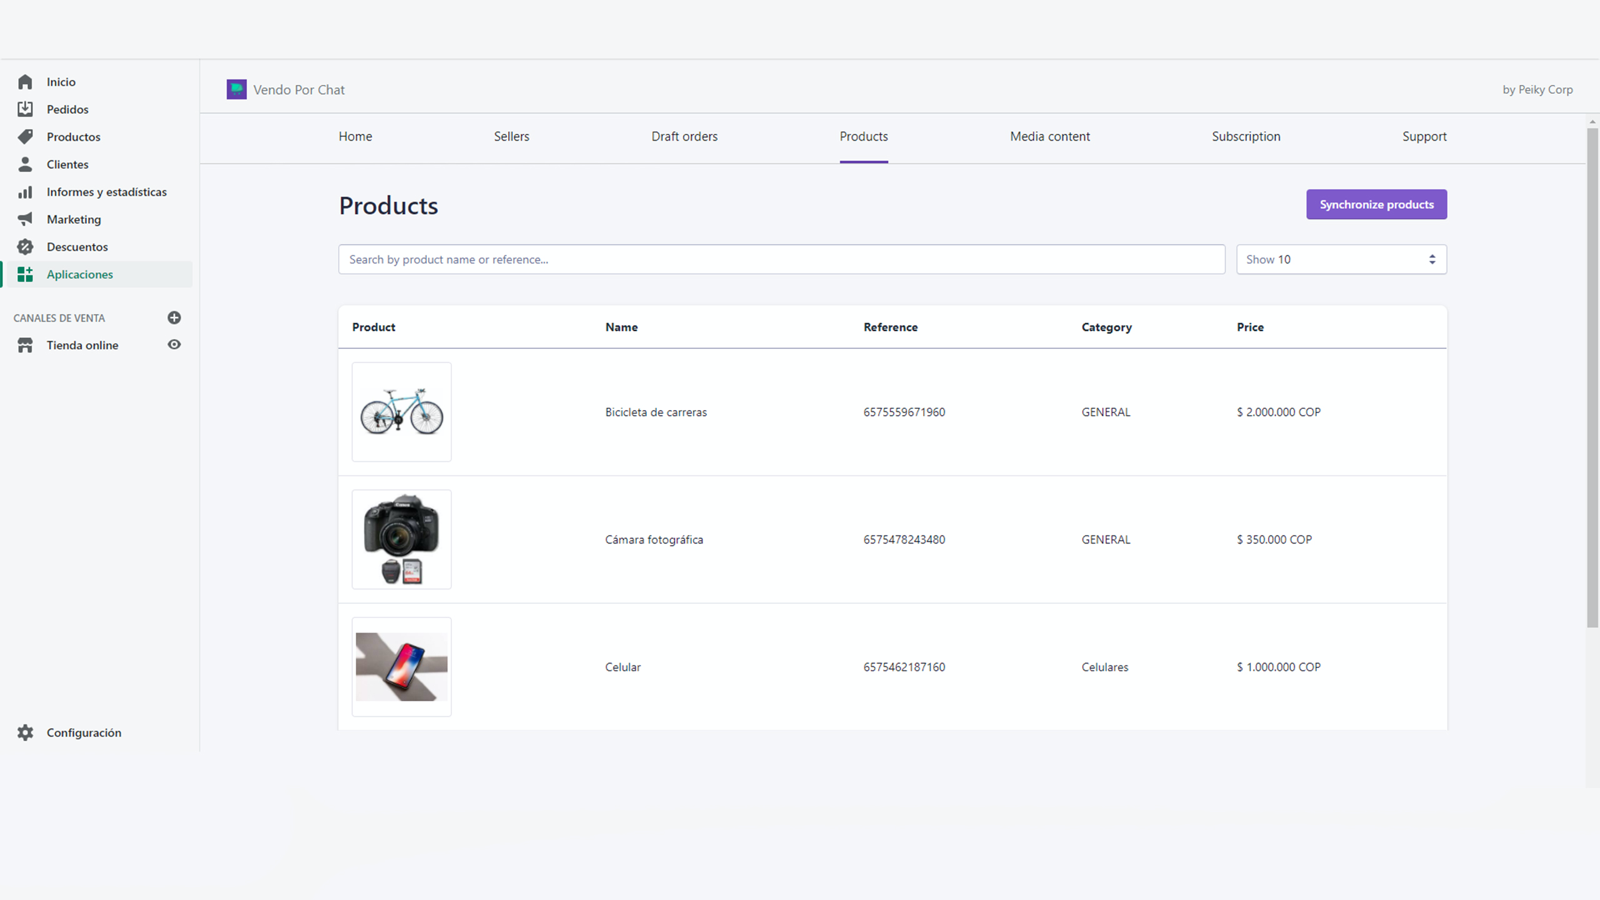 Integrate your products to vendo por chat app